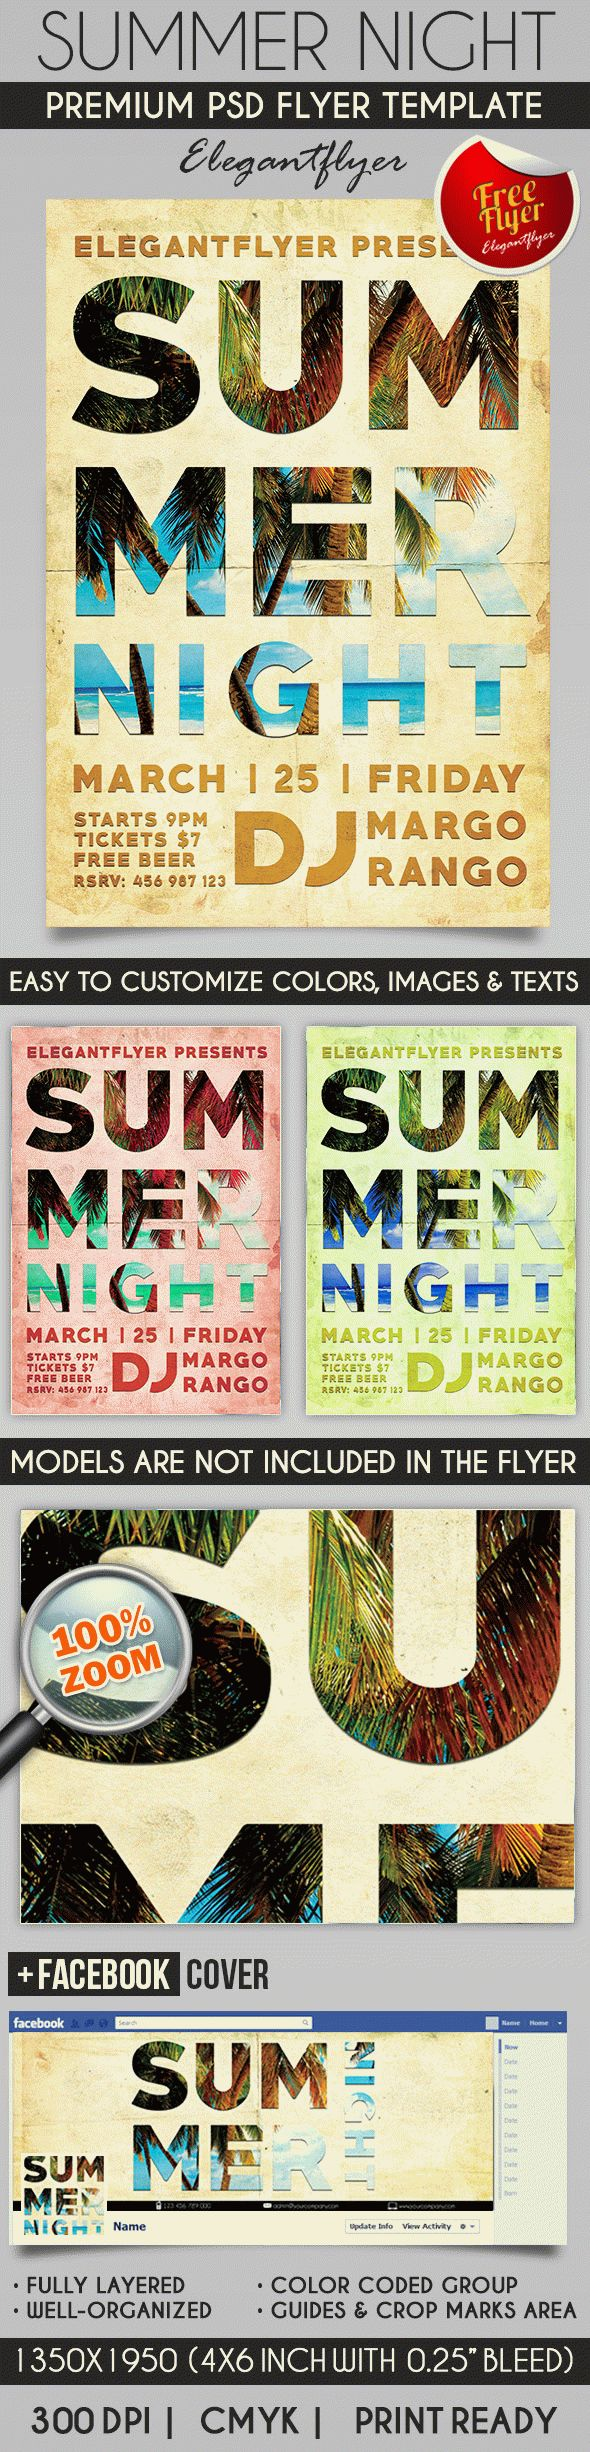 Flyer for Summer Night Club